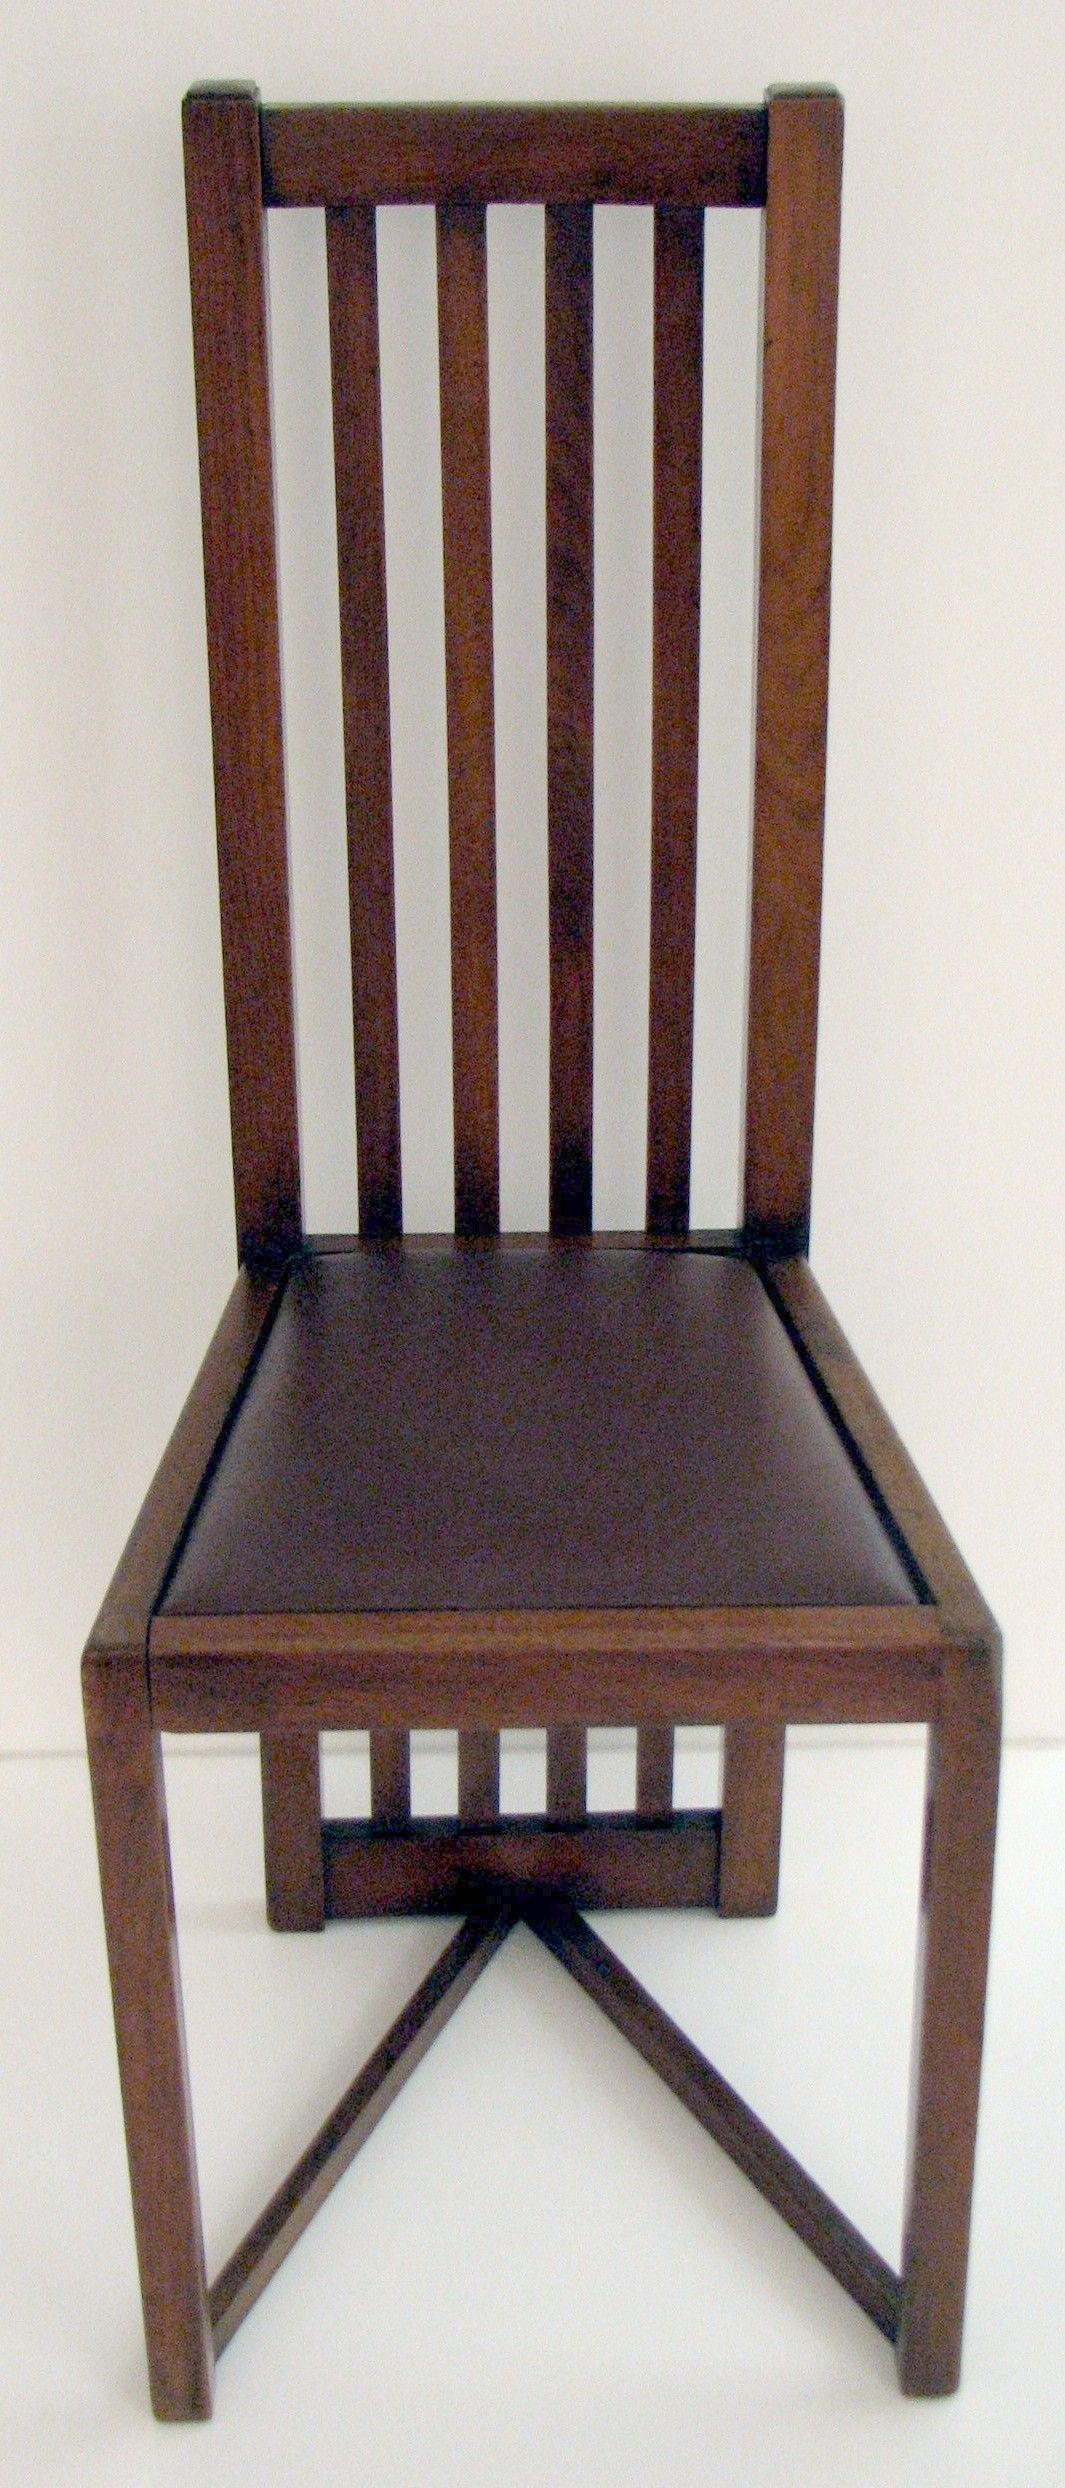 Image Detail For Charles Rennie Mackintosh Chair 1917  # Muebles Kevin Charles